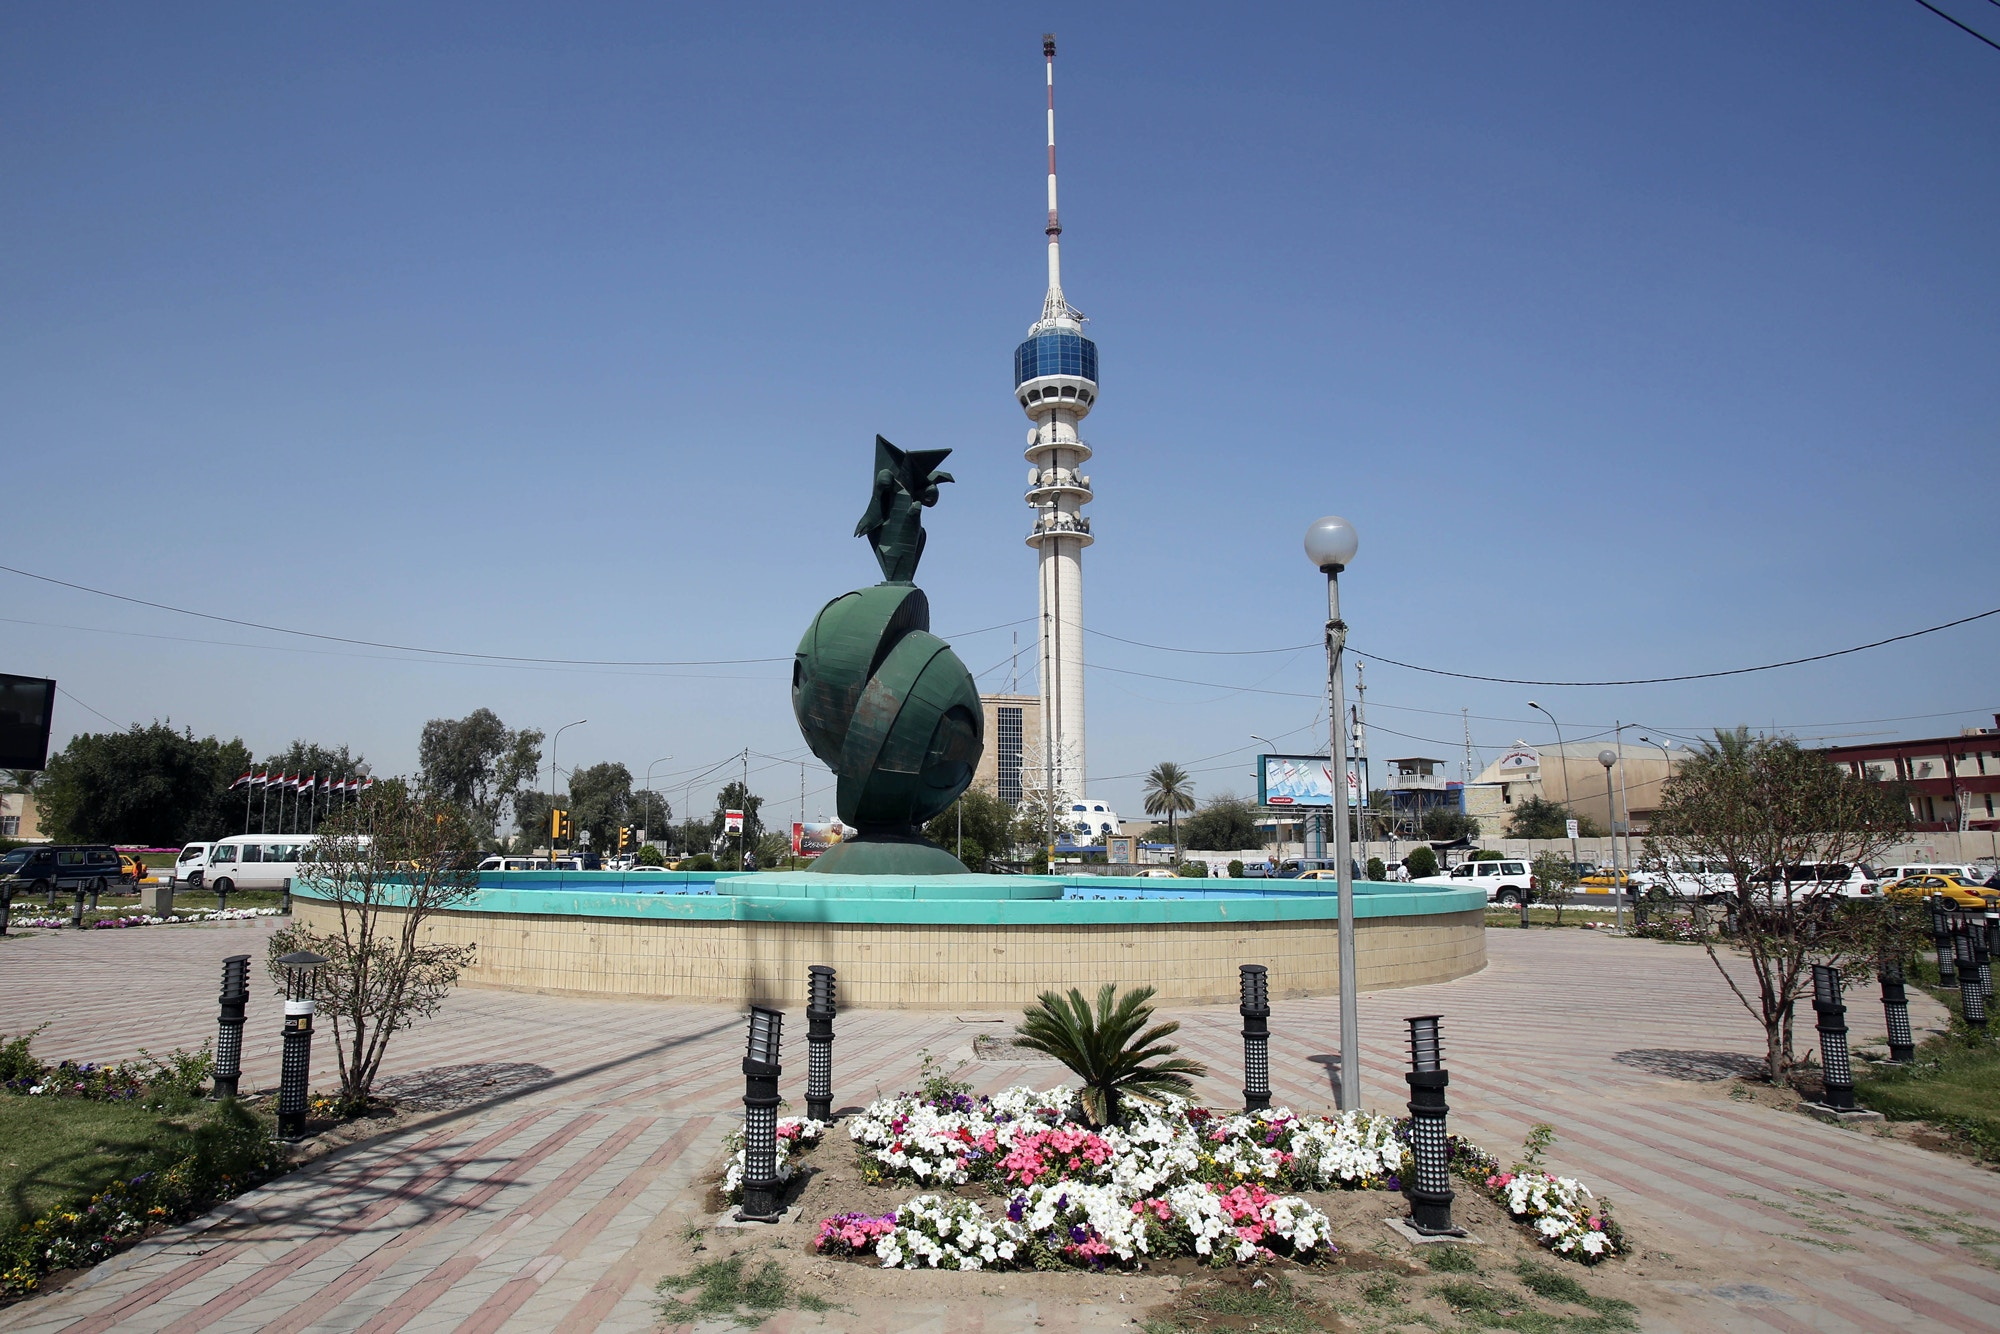 Spring flowers are planted in Nisoor Square, the site of a deadly shootout by Blackwater private security contractors in 2007, in Baghdad, Iraq, on April 15, 2015.